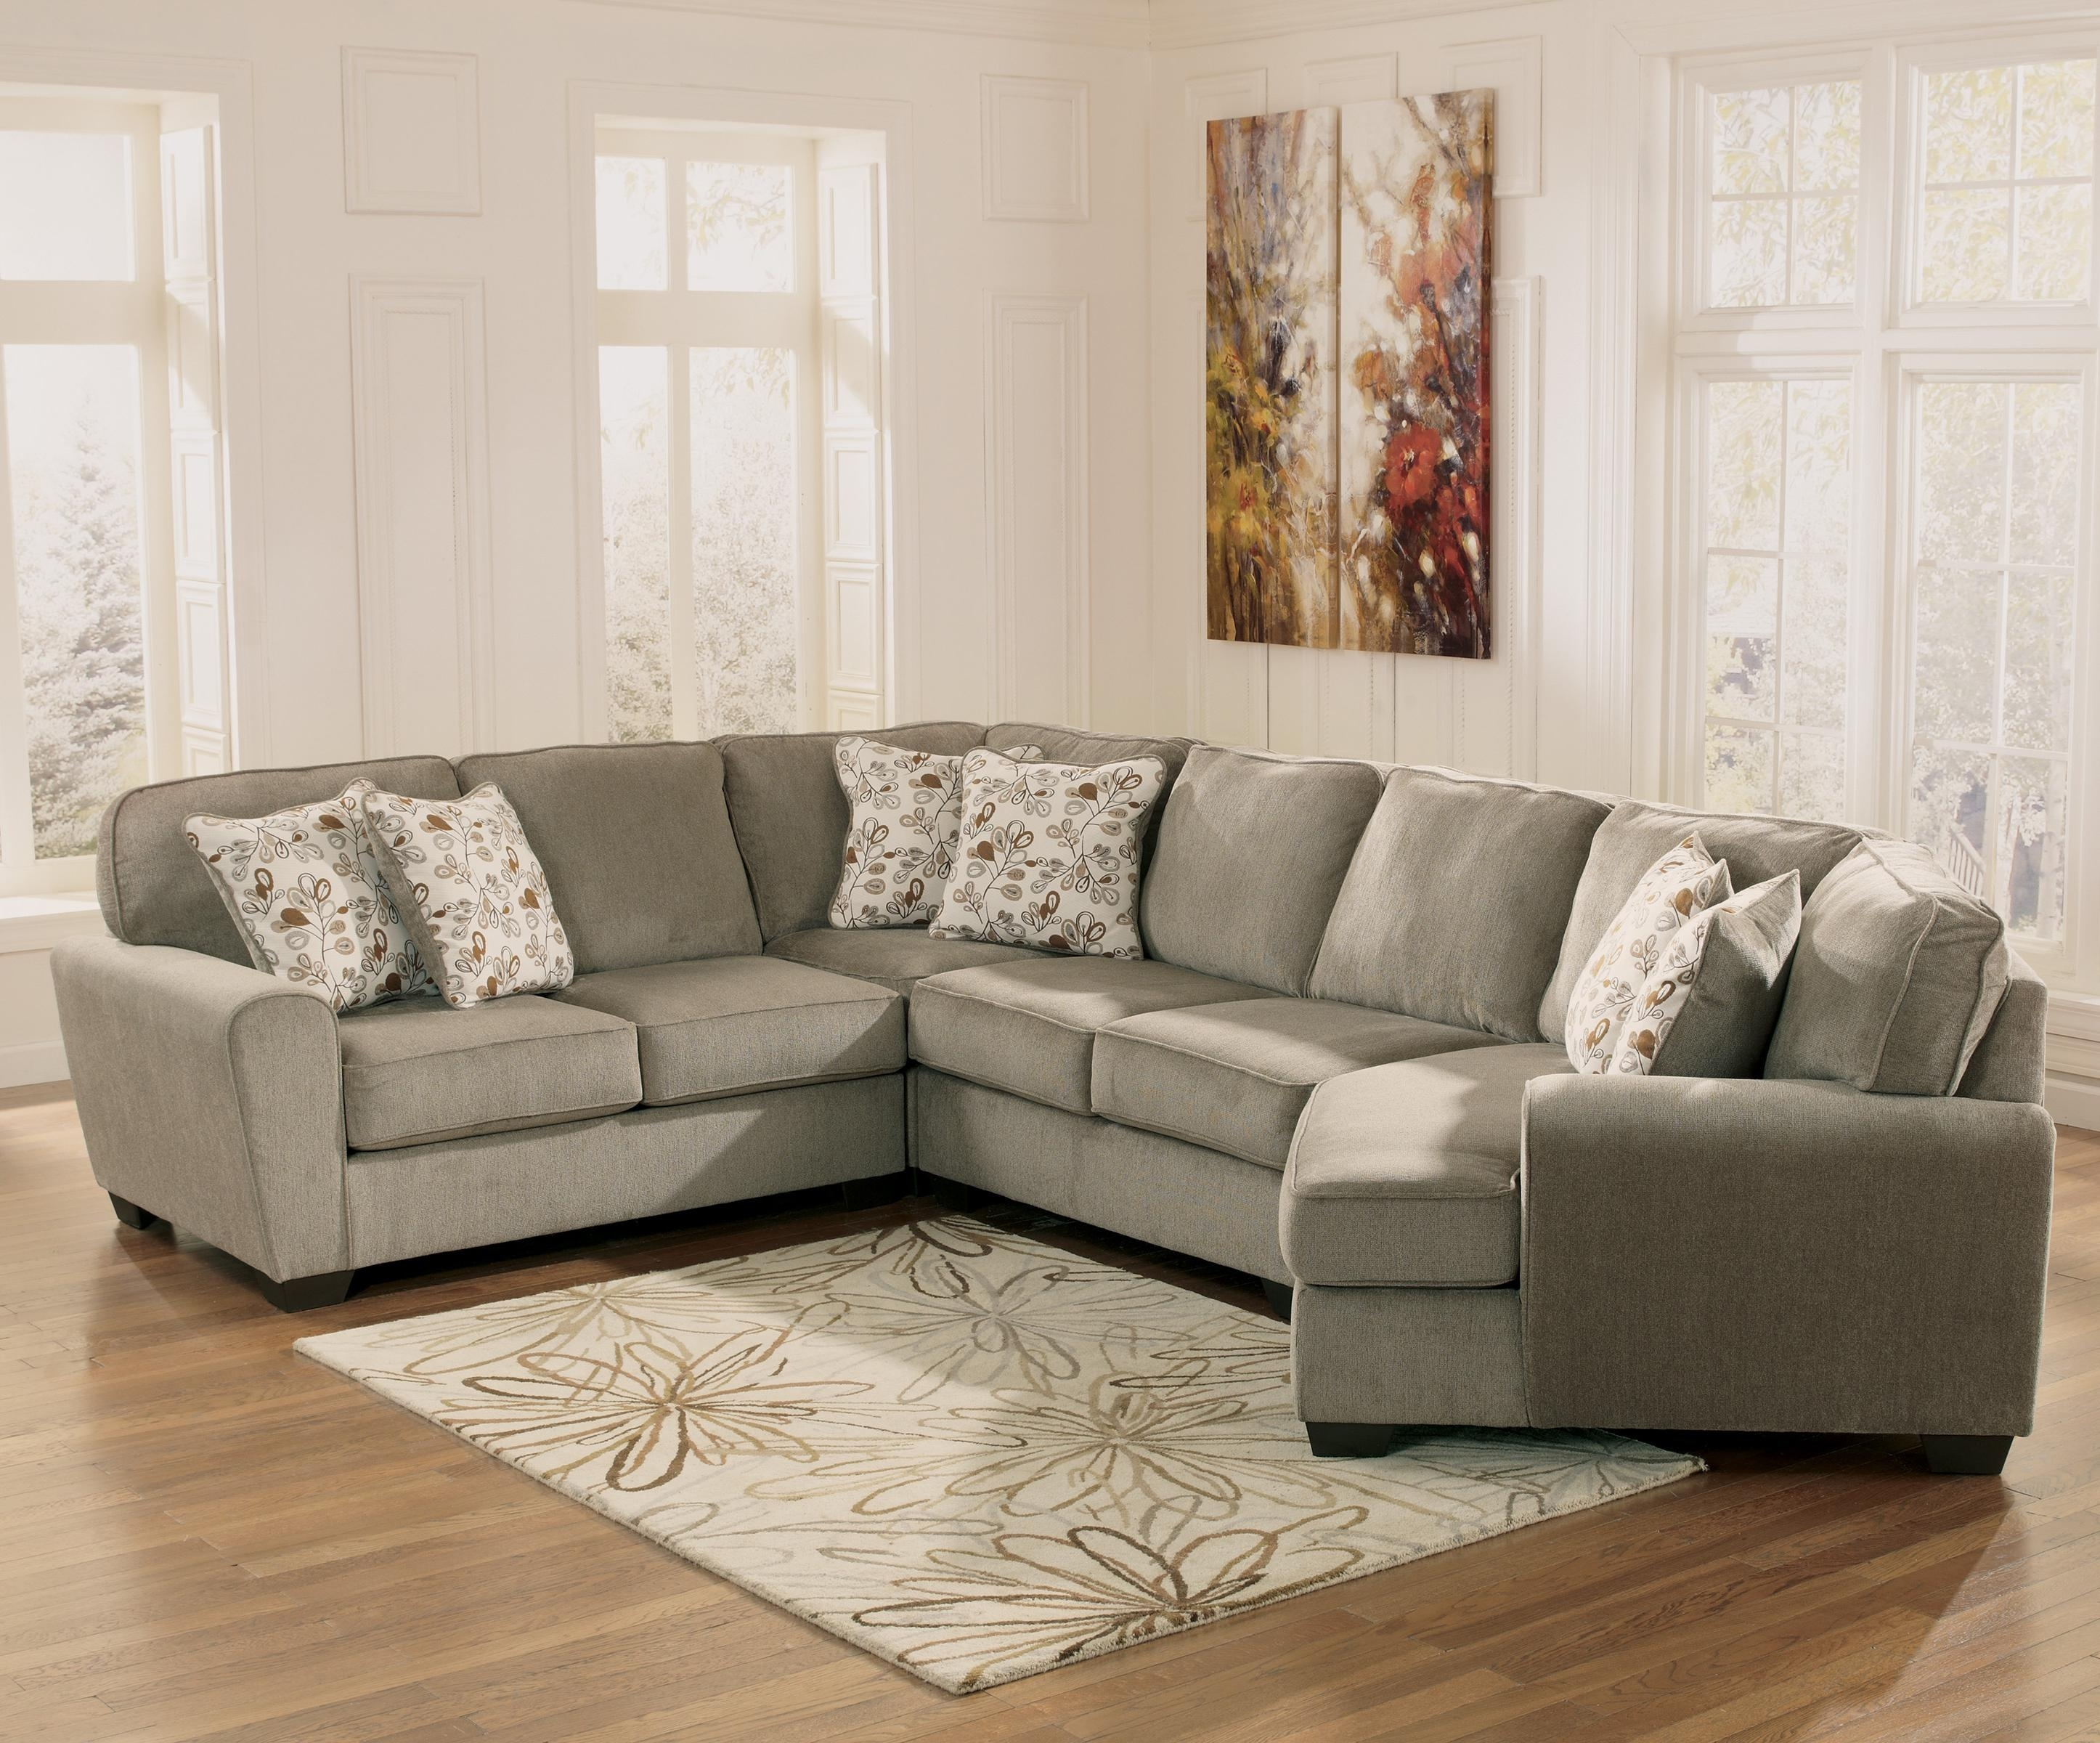 Patina 4-Piece Small Sectional With Right Cuddler | Rotmans | Sofa regarding Sectional Sofas With Cuddler (Image 7 of 10)